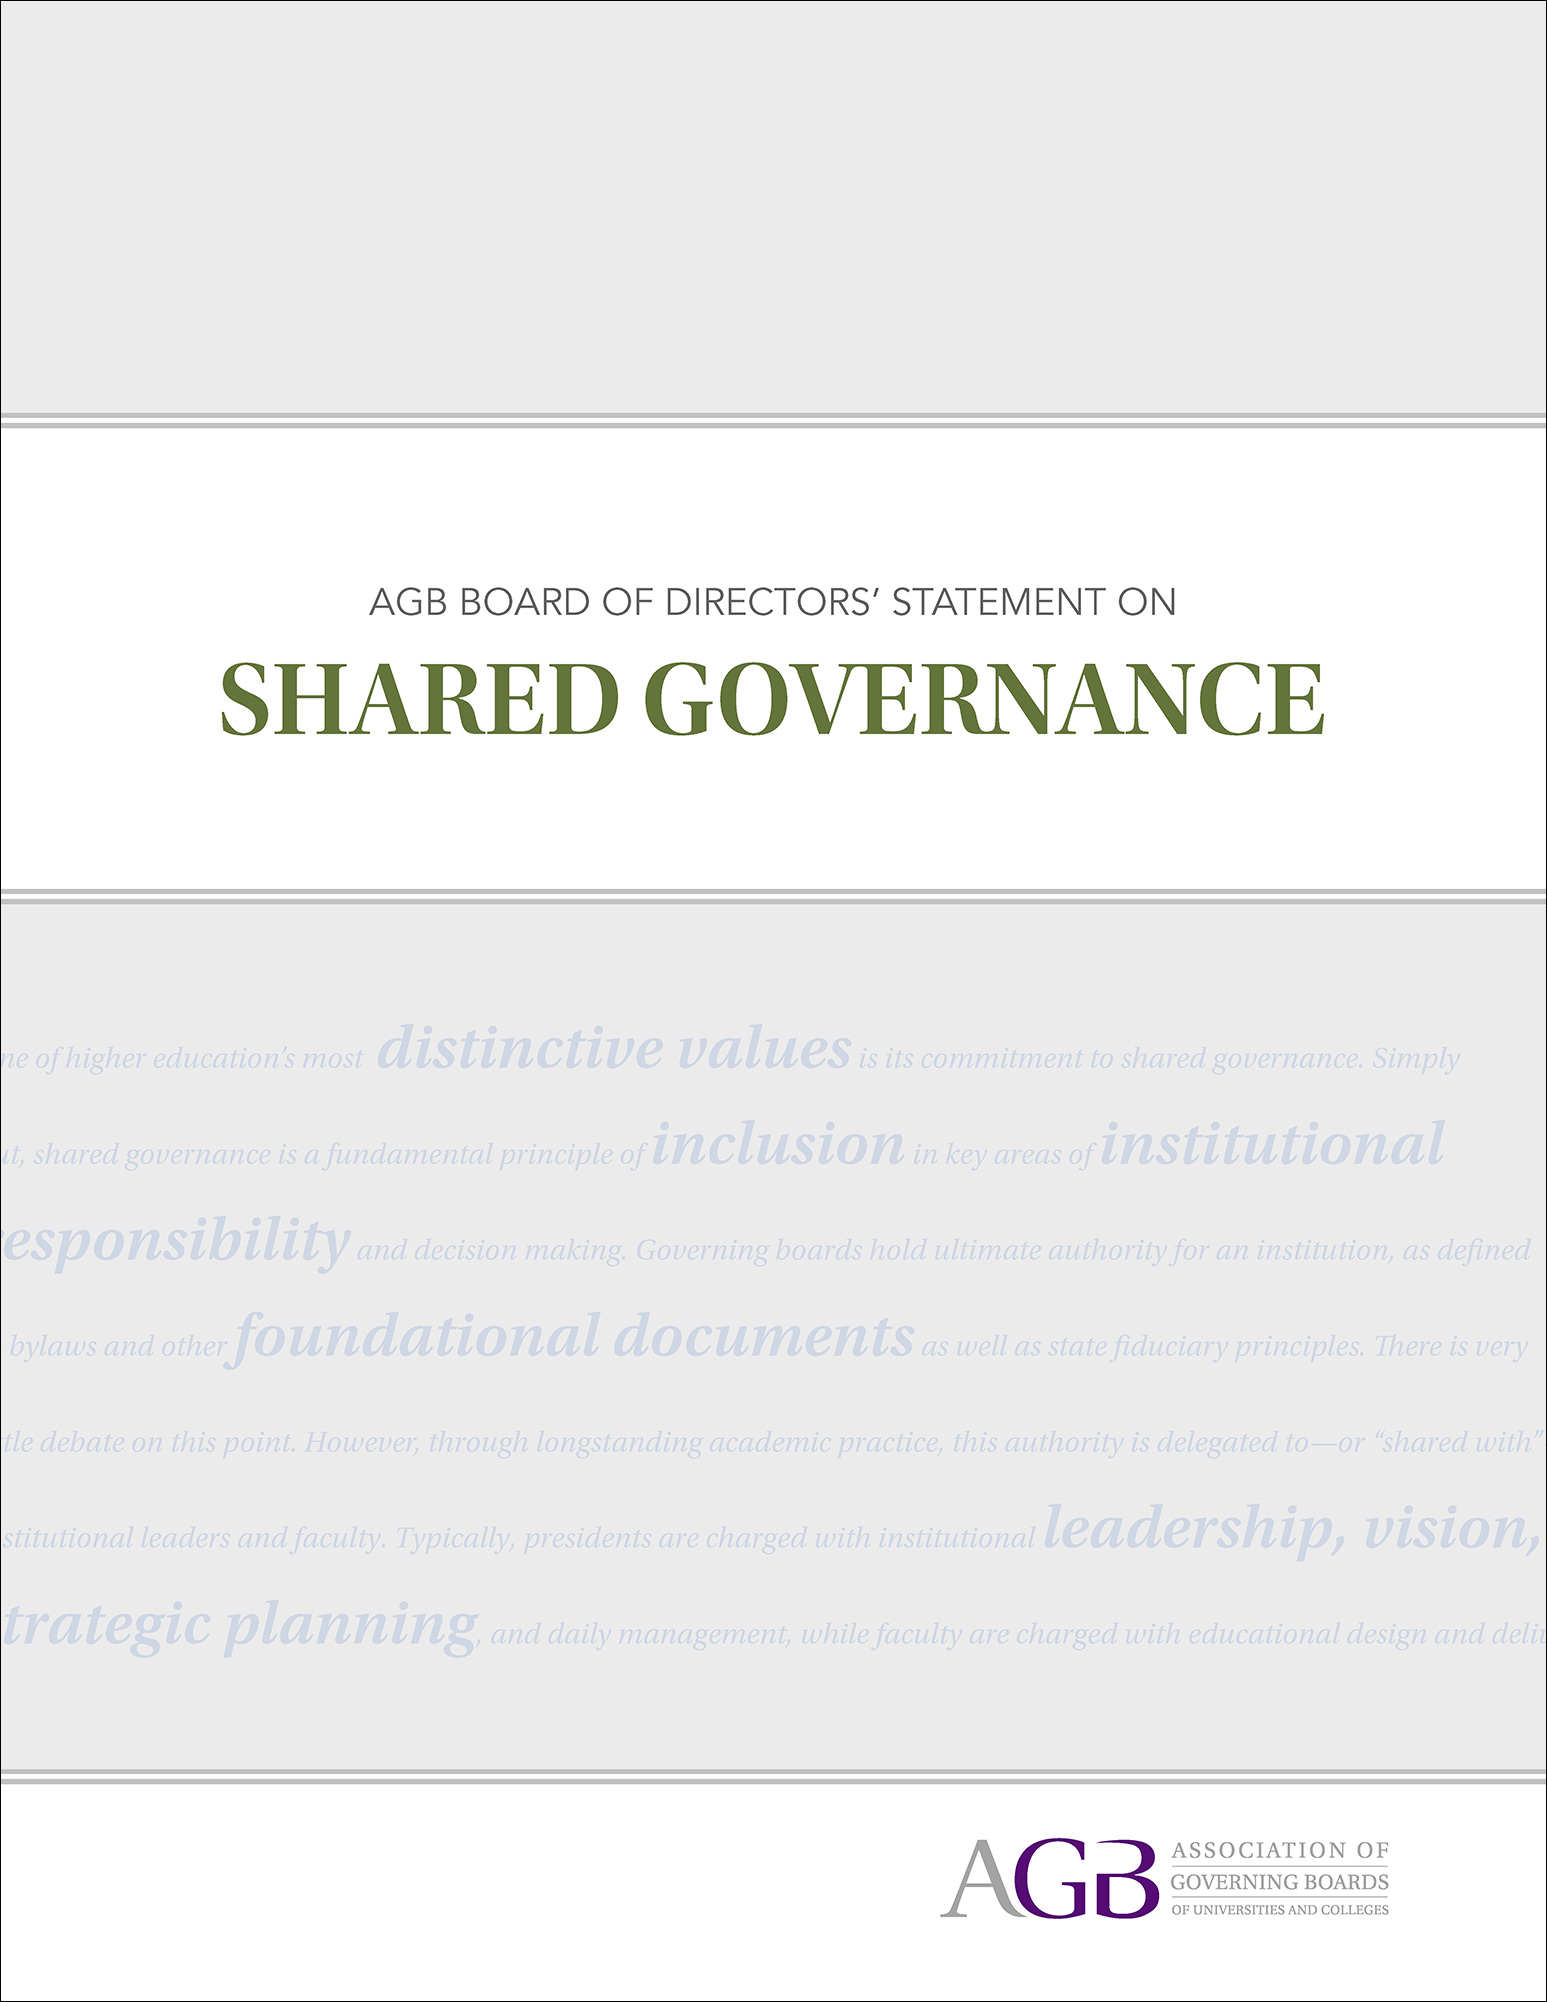 AGB Board of Directors' Statement on Shared Governance